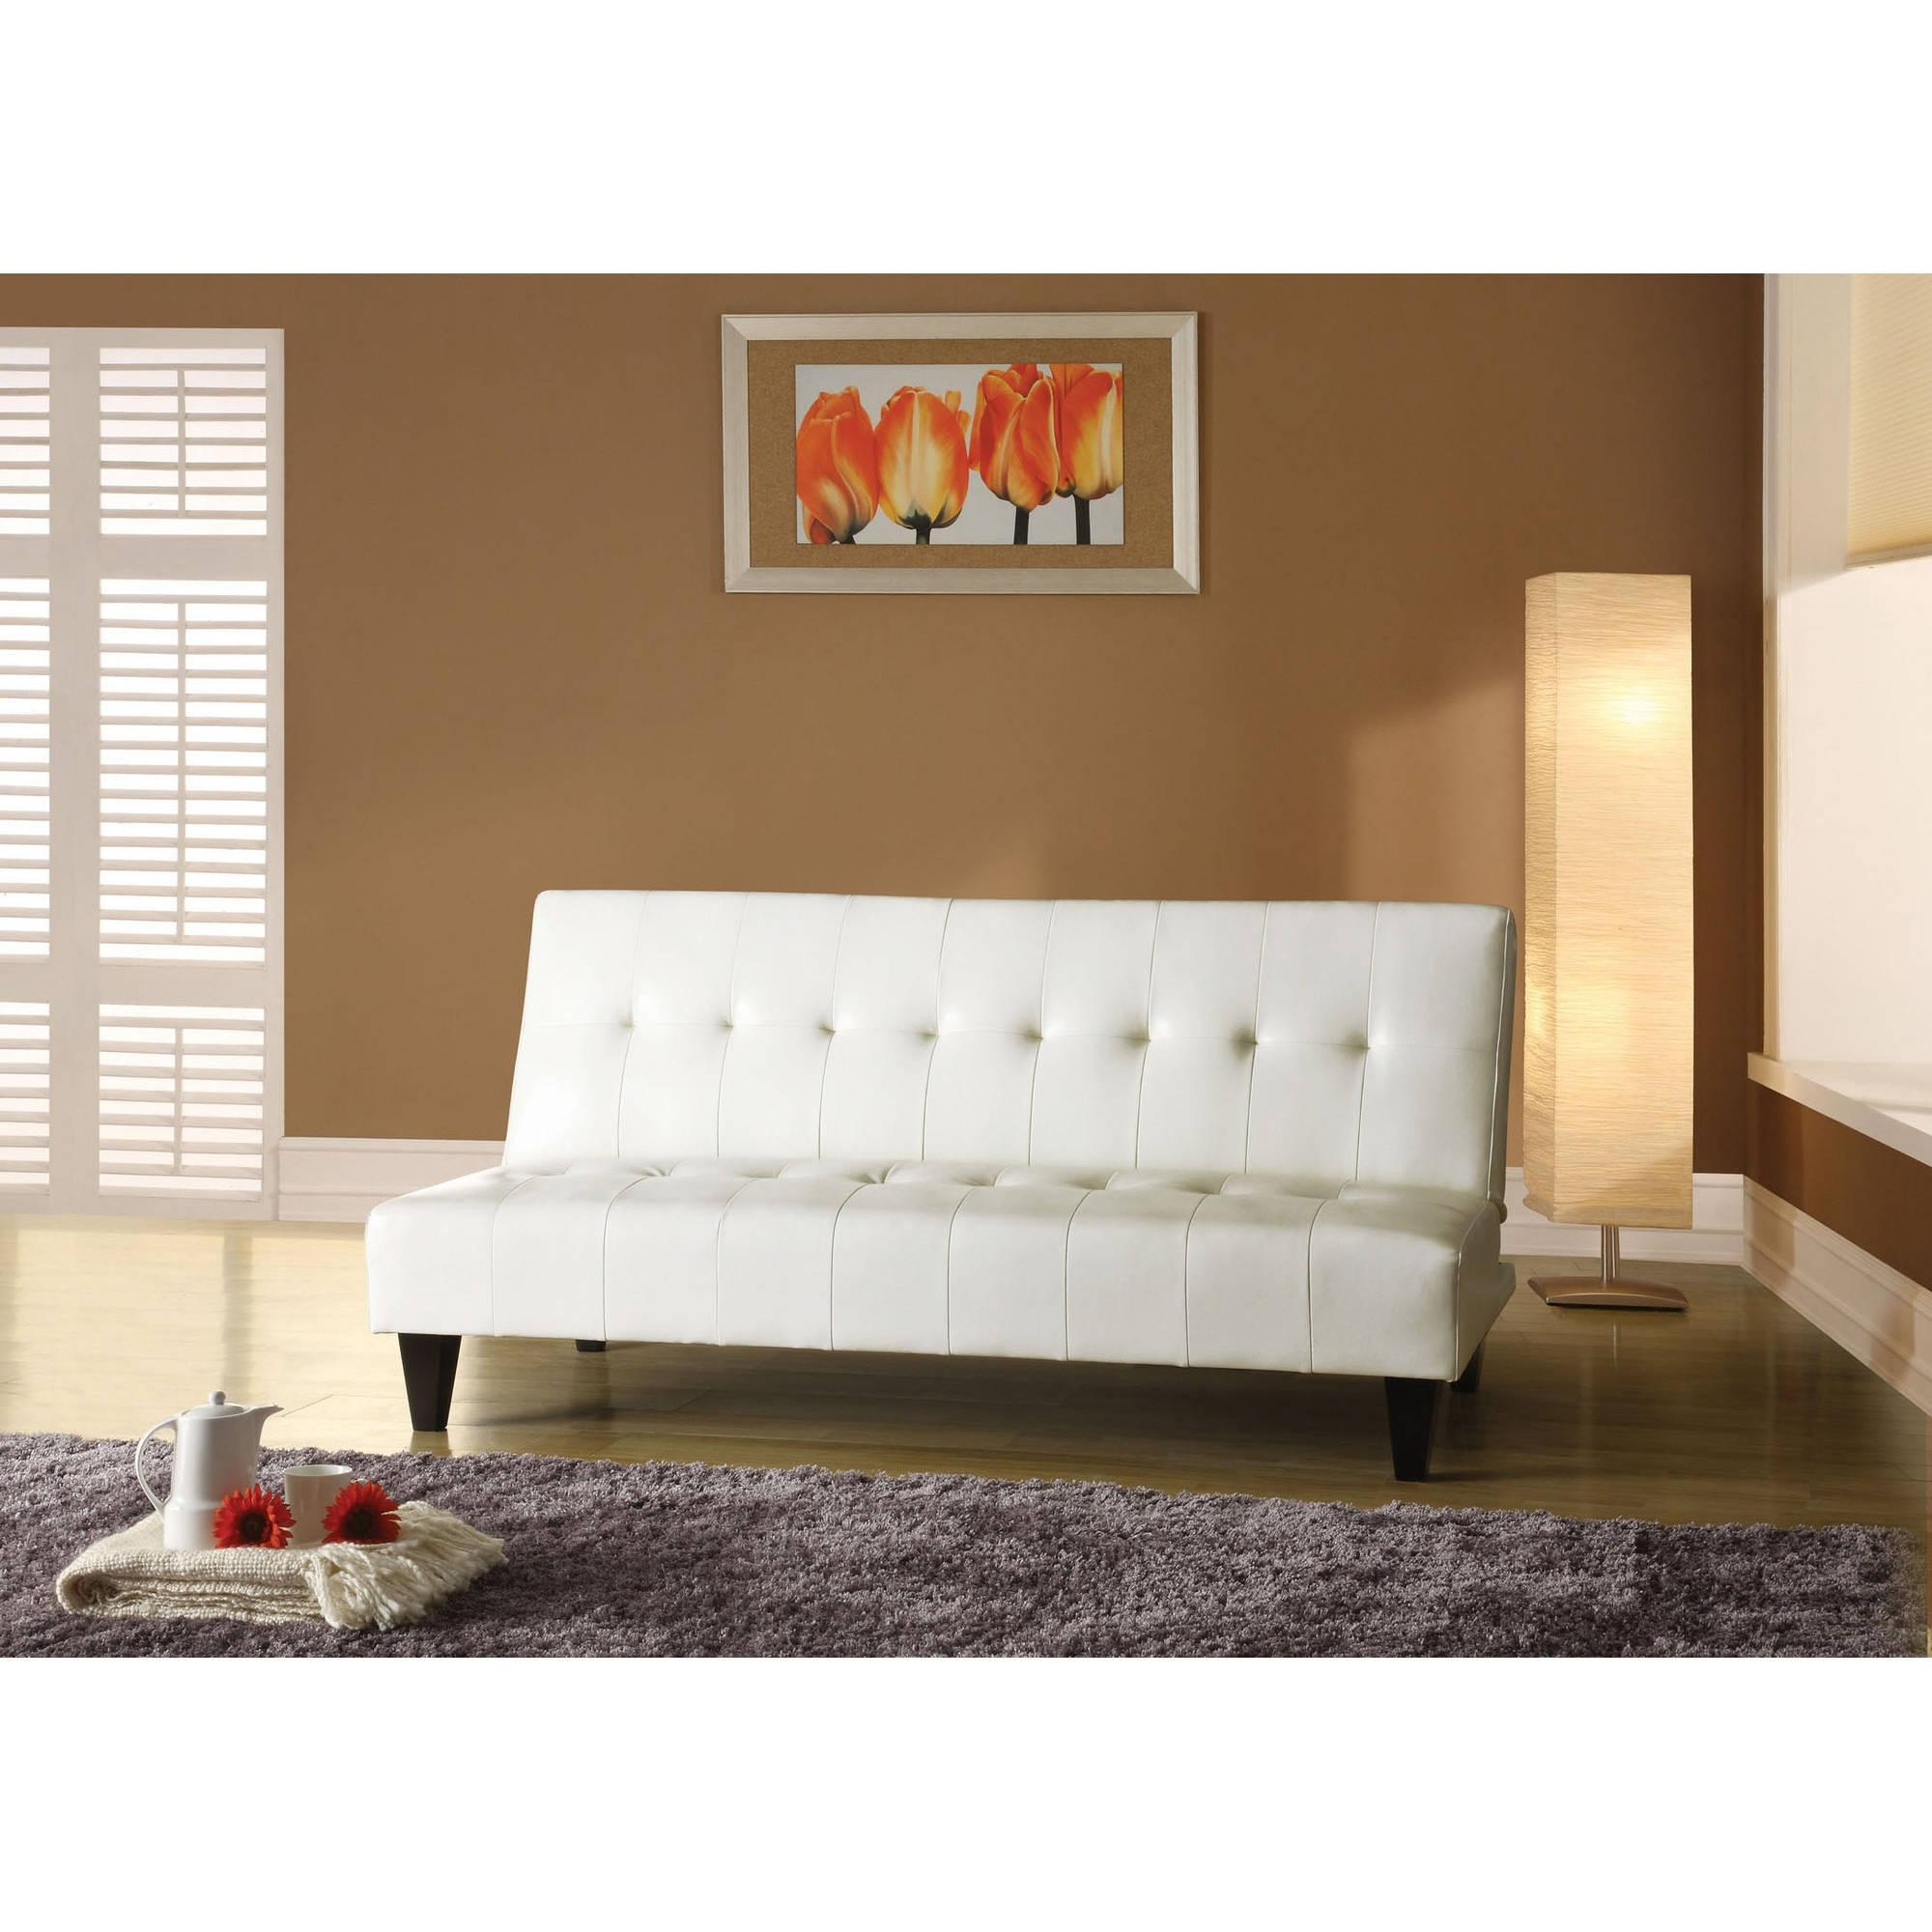 Furniture & Sofa: Perfect Small Spaces Configurable Sectional Sofa For Small Sofas With Chaise Lounge (Image 6 of 20)